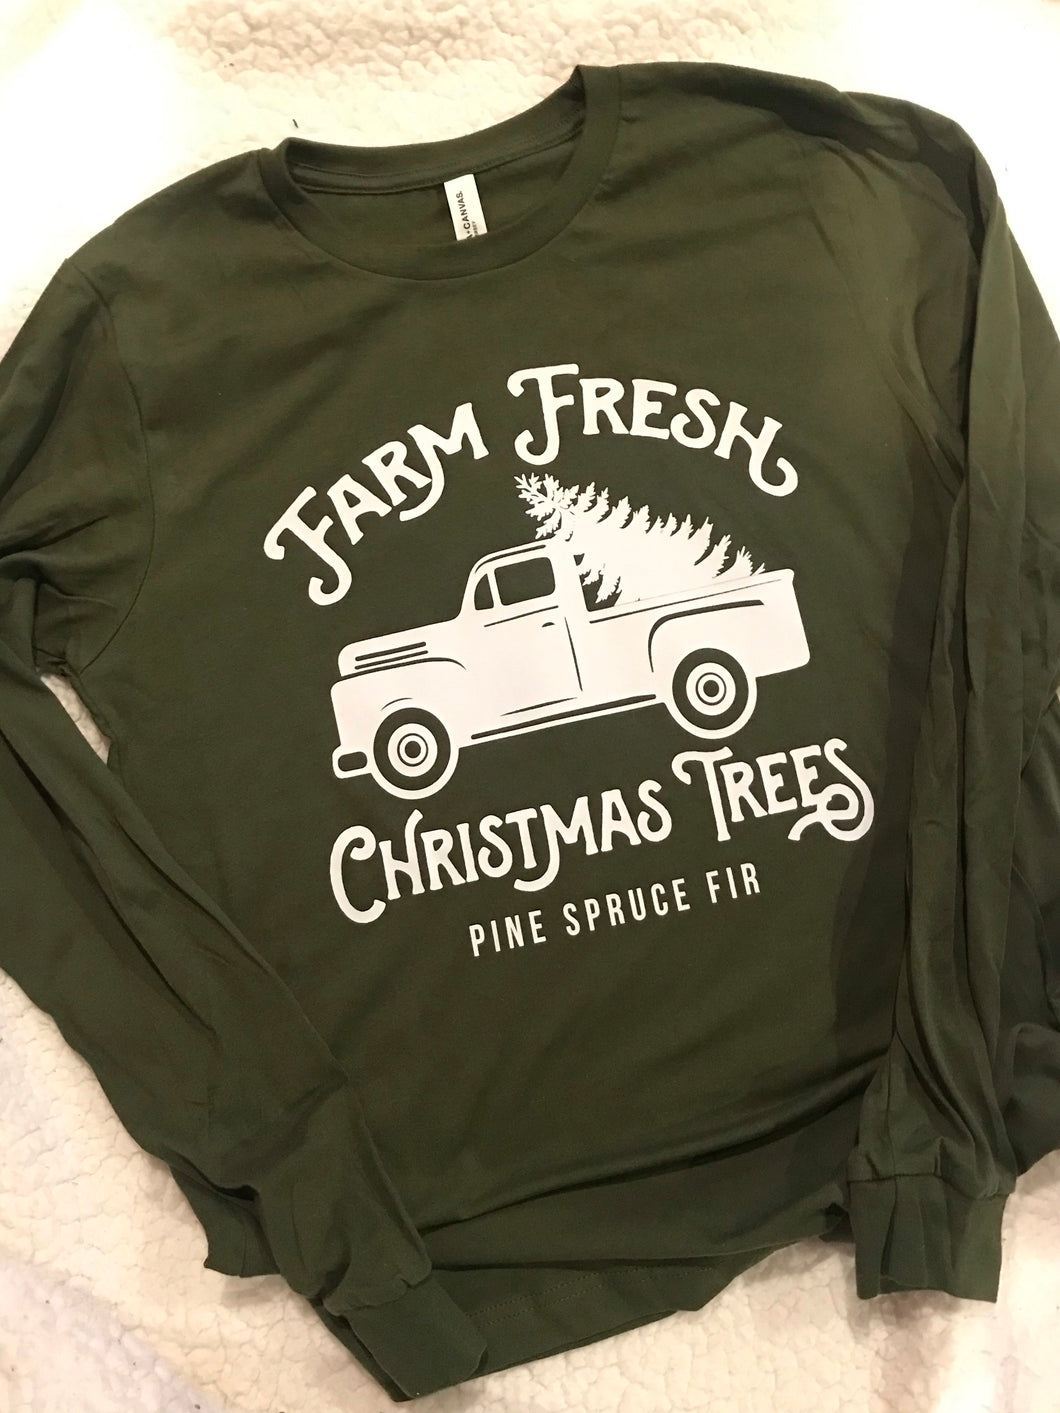 Farm Fresh Christmas Trees - Buggy Boos Embroidery